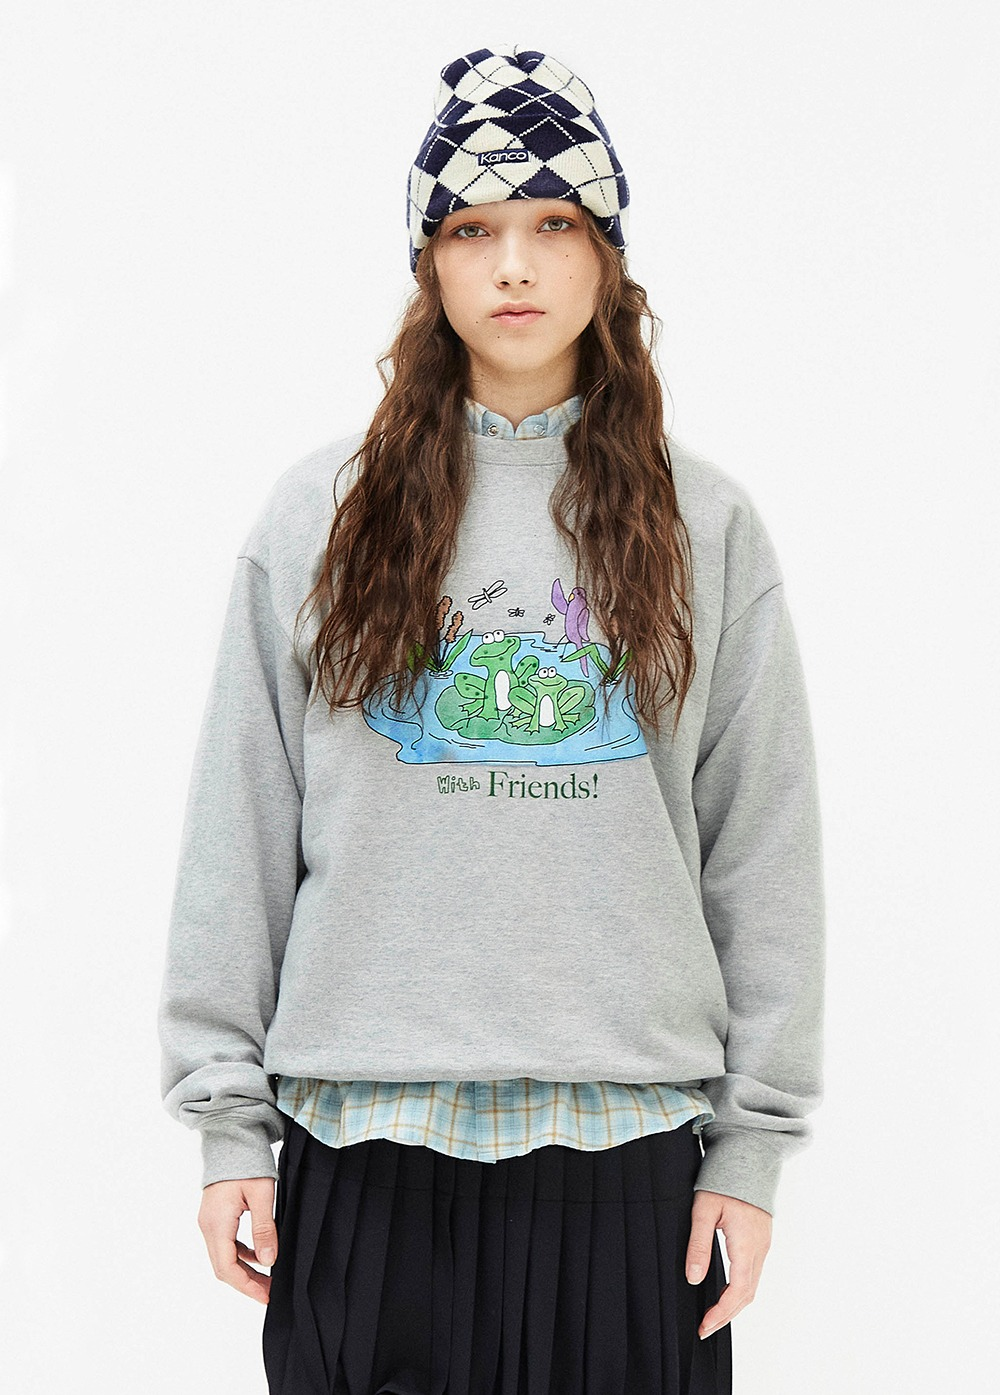 KANCO FRIENDS SWEATSHIRT heather gray